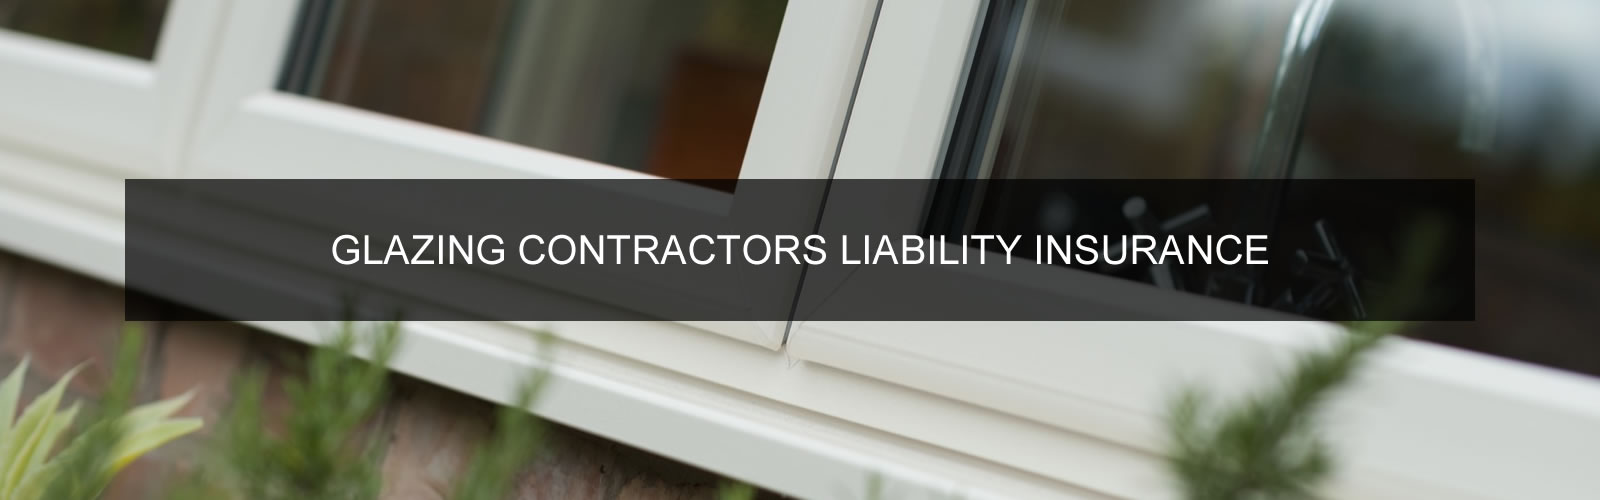 Glazing Installation Contractors Liability Insurance